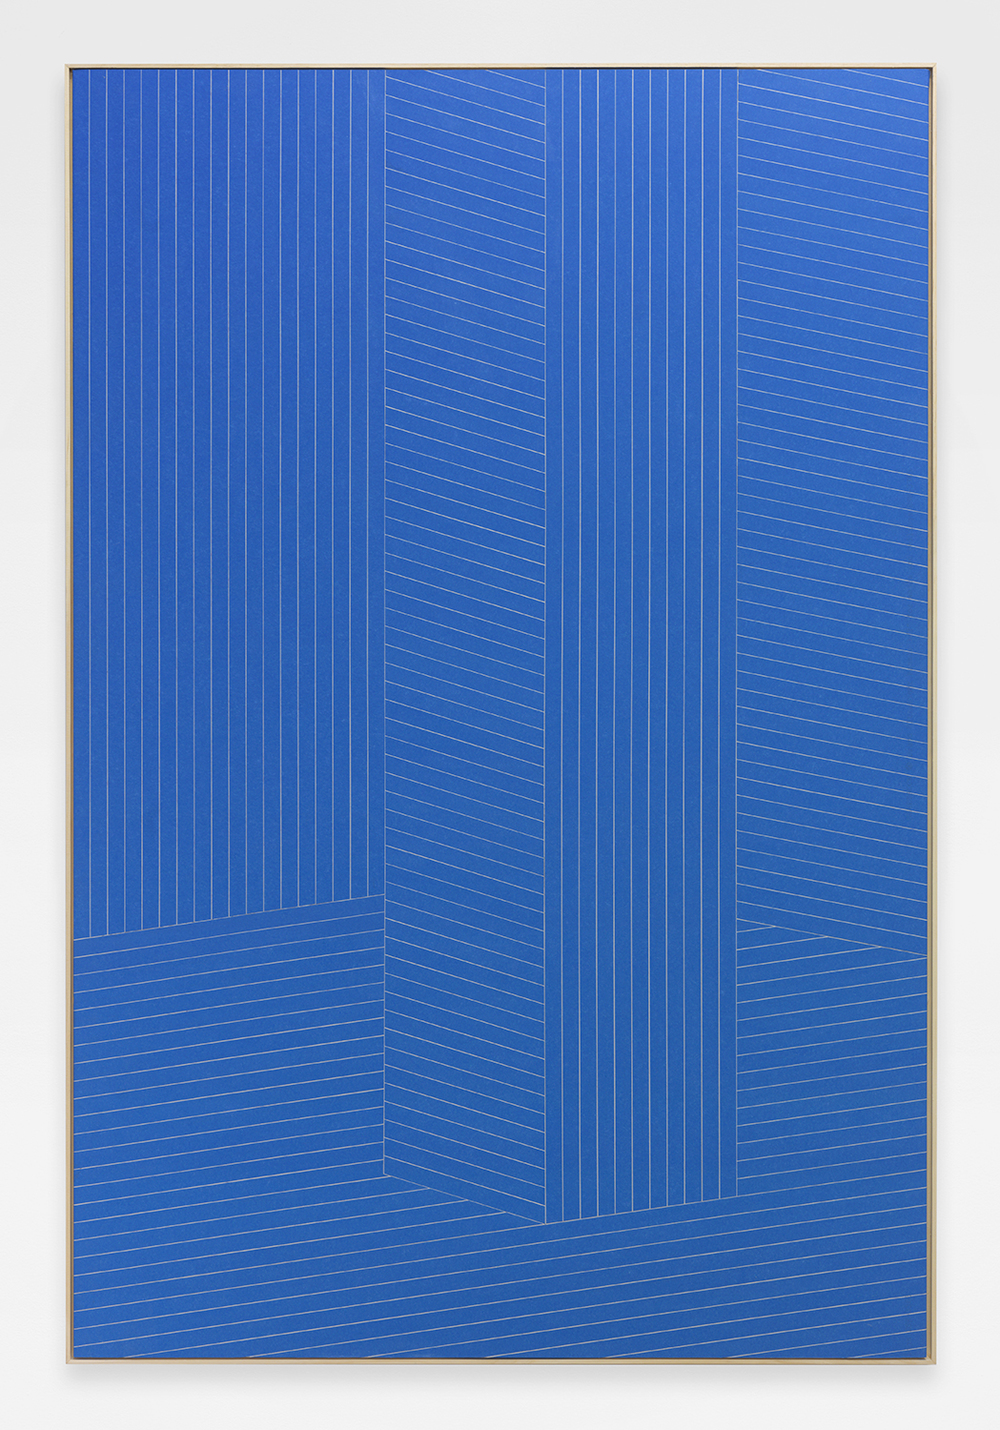 Low Tide, 2014 Painters tape, sheet rock, wood 72 x 48 inches